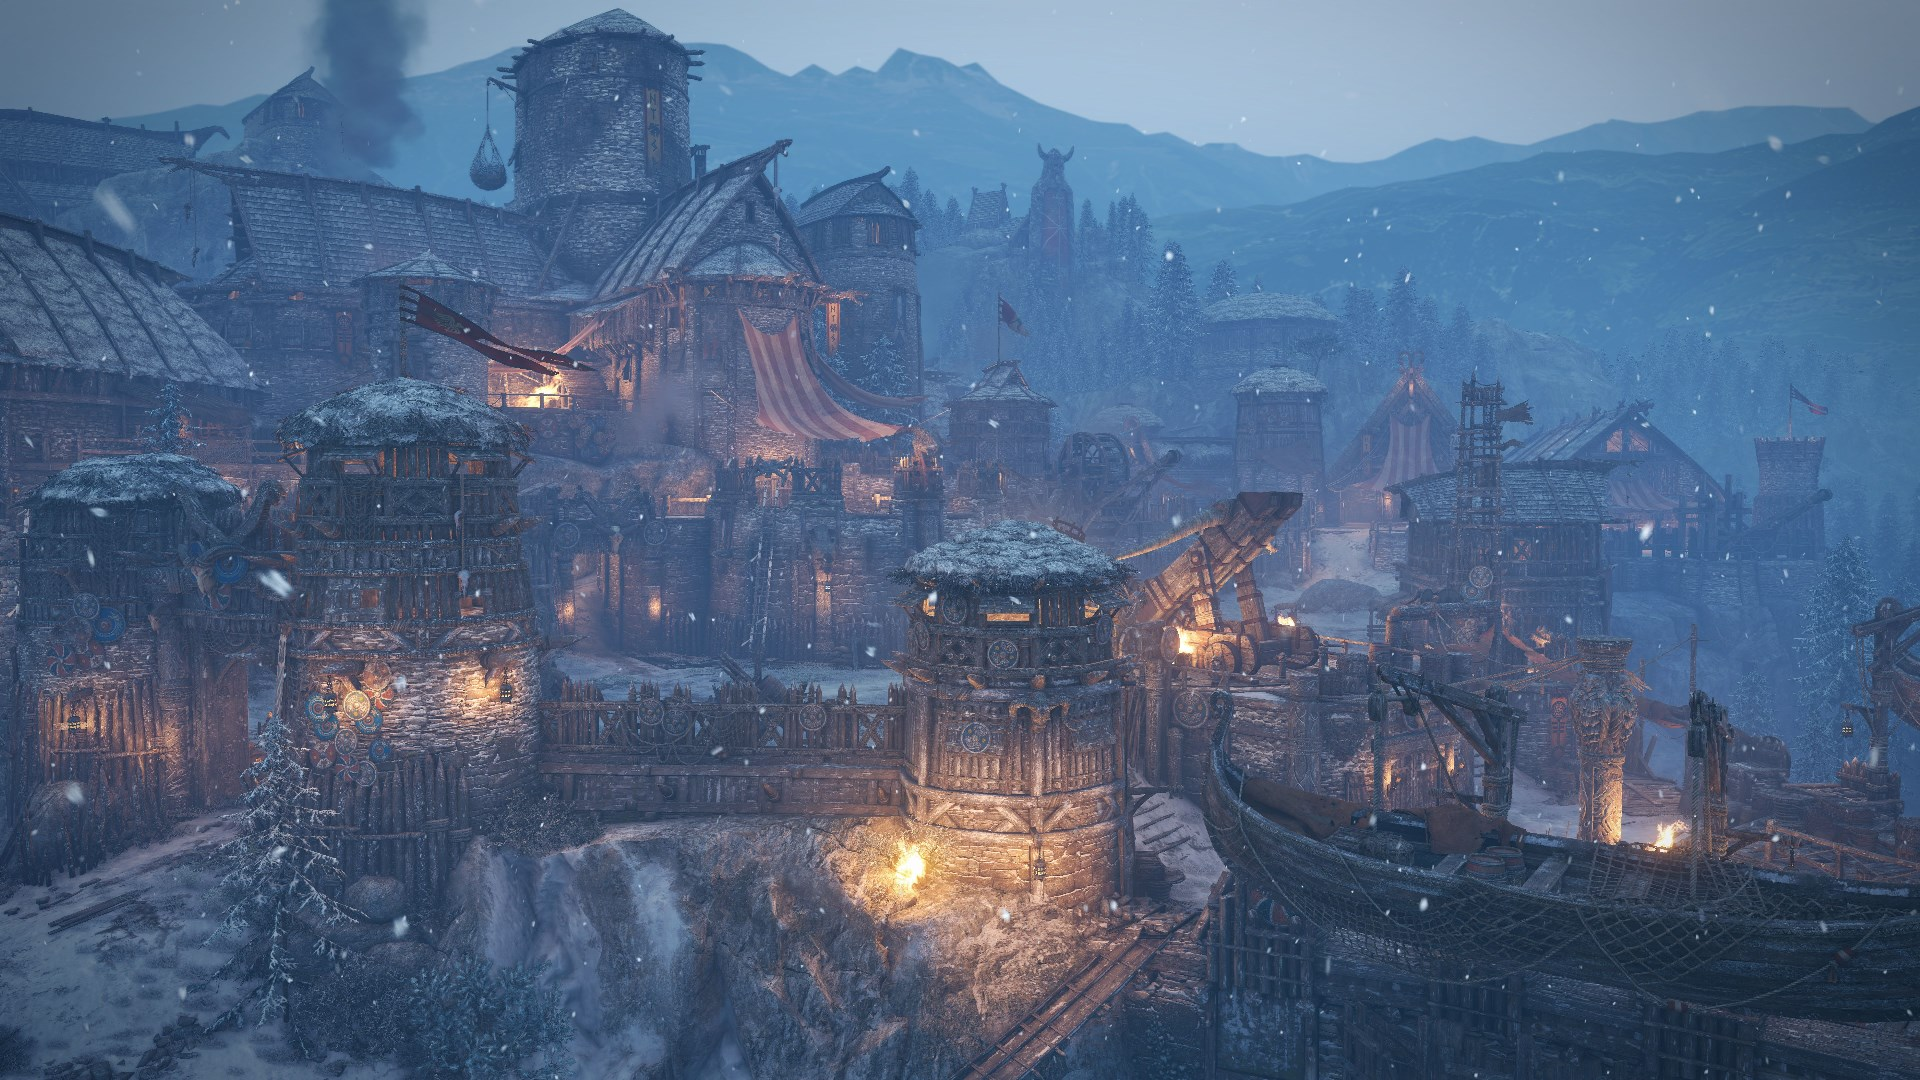 For Honor Viking Wallpaper: For Honor Wallpapers, Pictures, Images